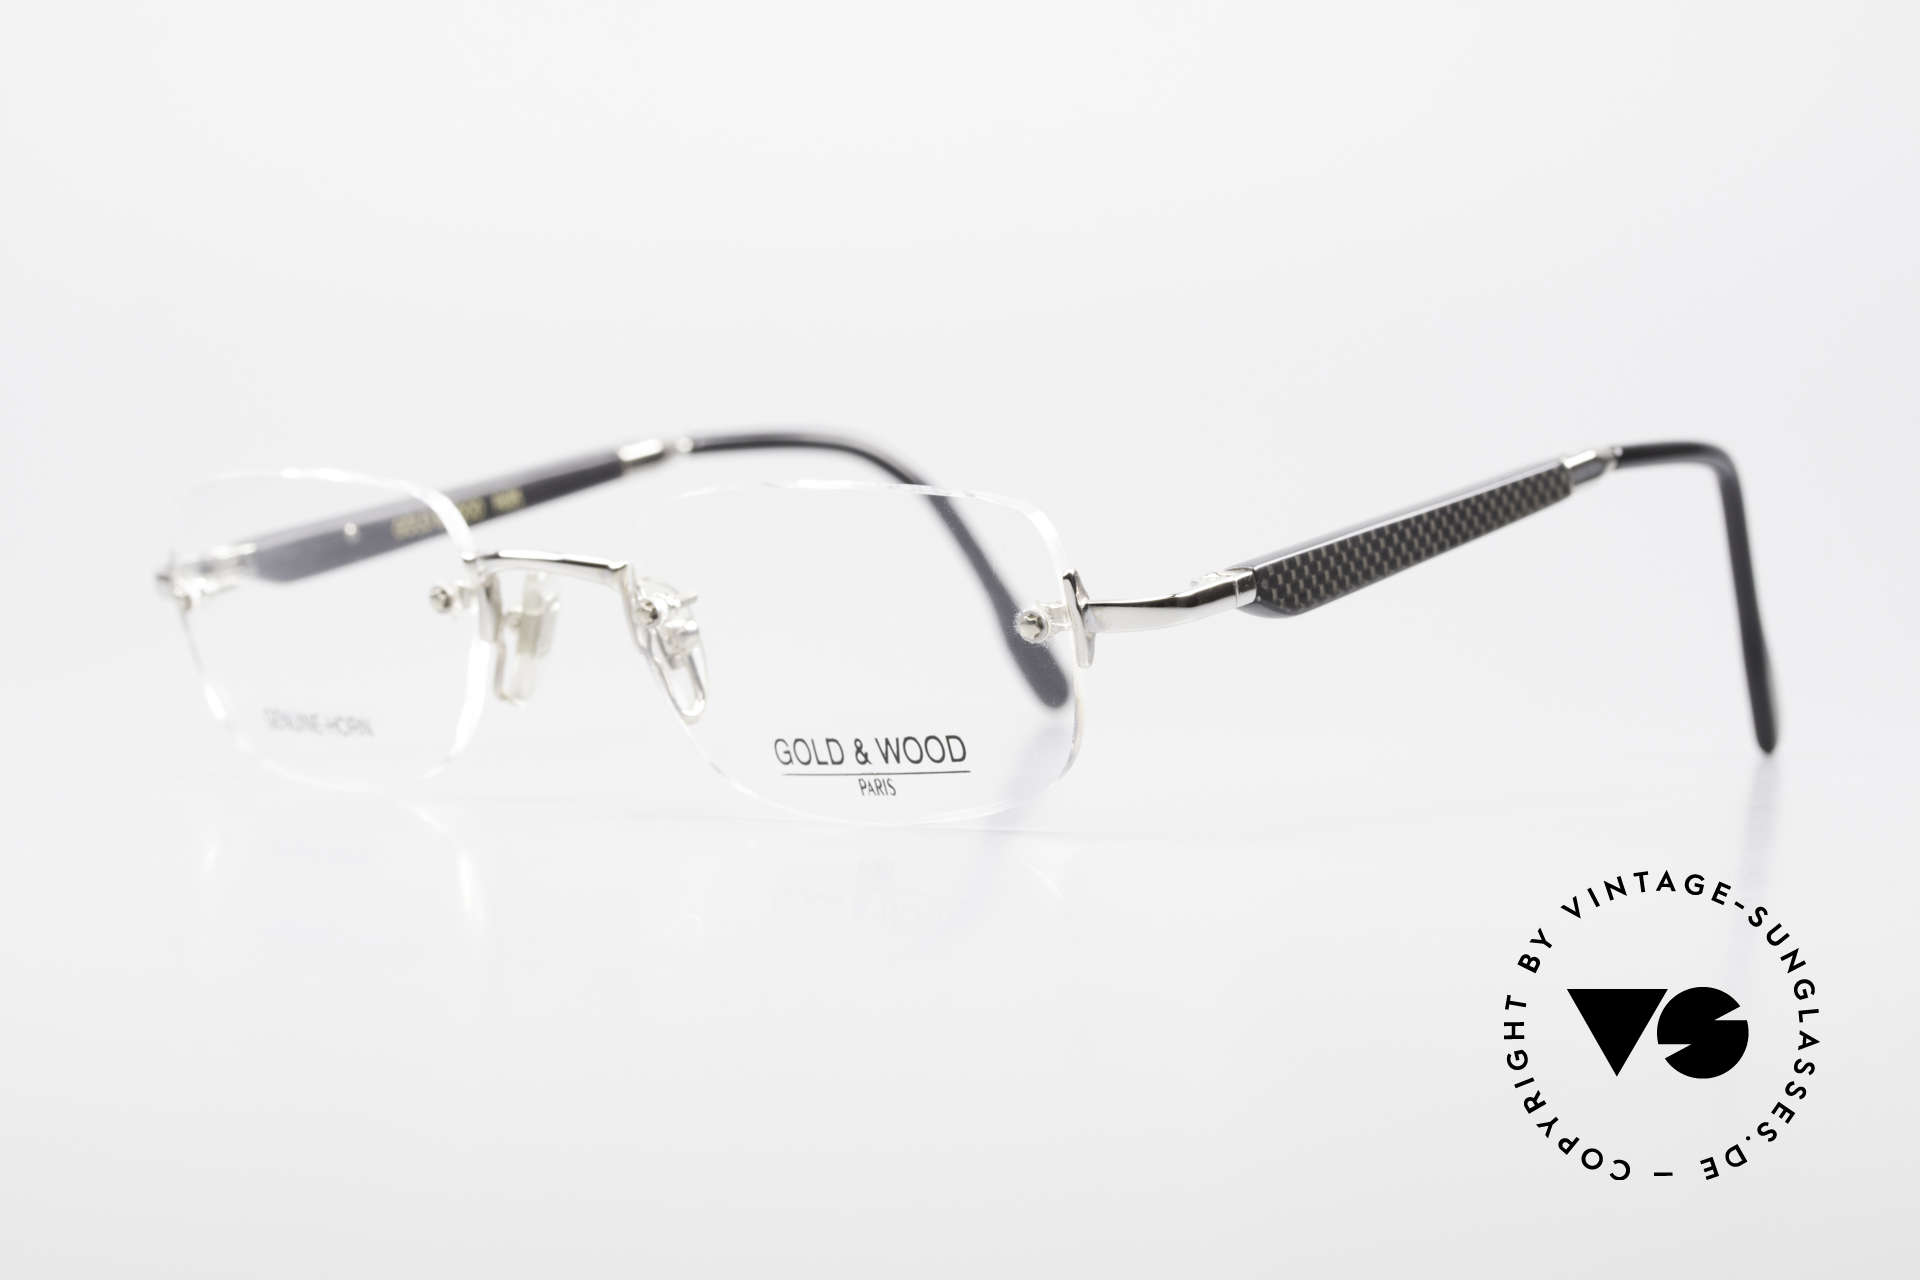 Gold & Wood 332 Genuine Horn Rimless Glasses, classic unisex model with flexible spring hinges, Made for Men and Women